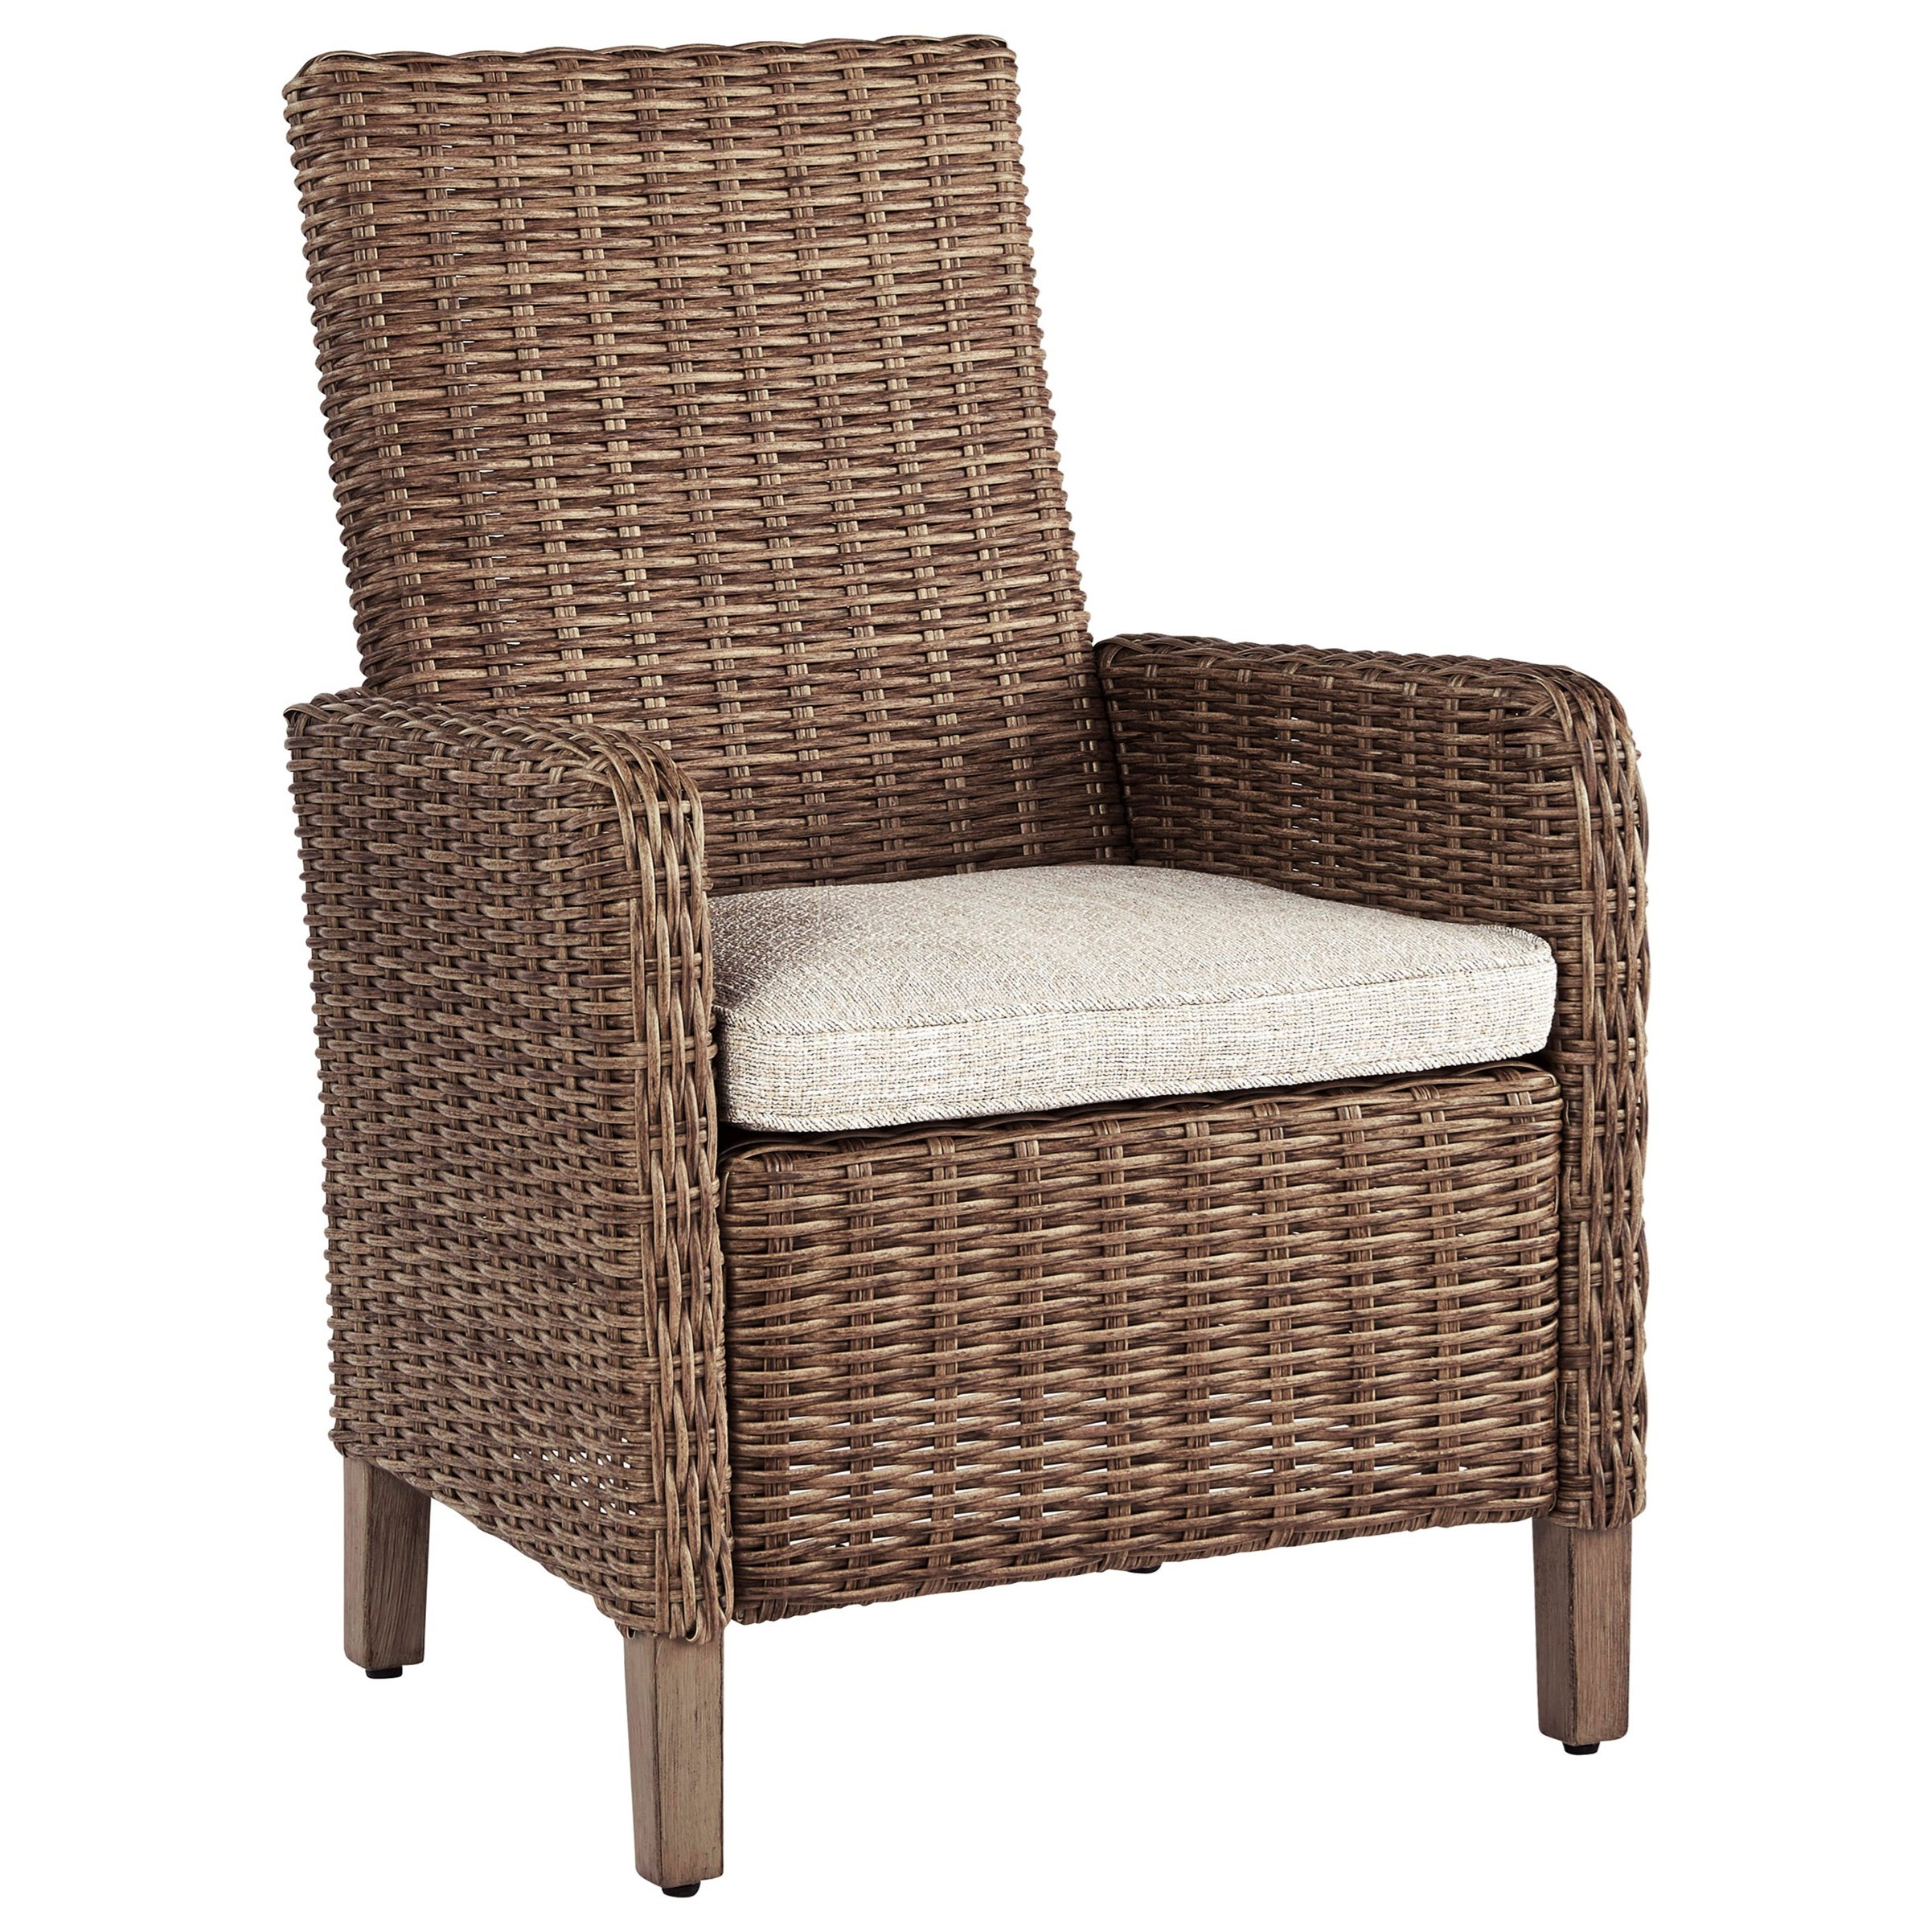 Beachcroft Arm Chair with Cushion by Signature Design by Ashley at Sparks HomeStore